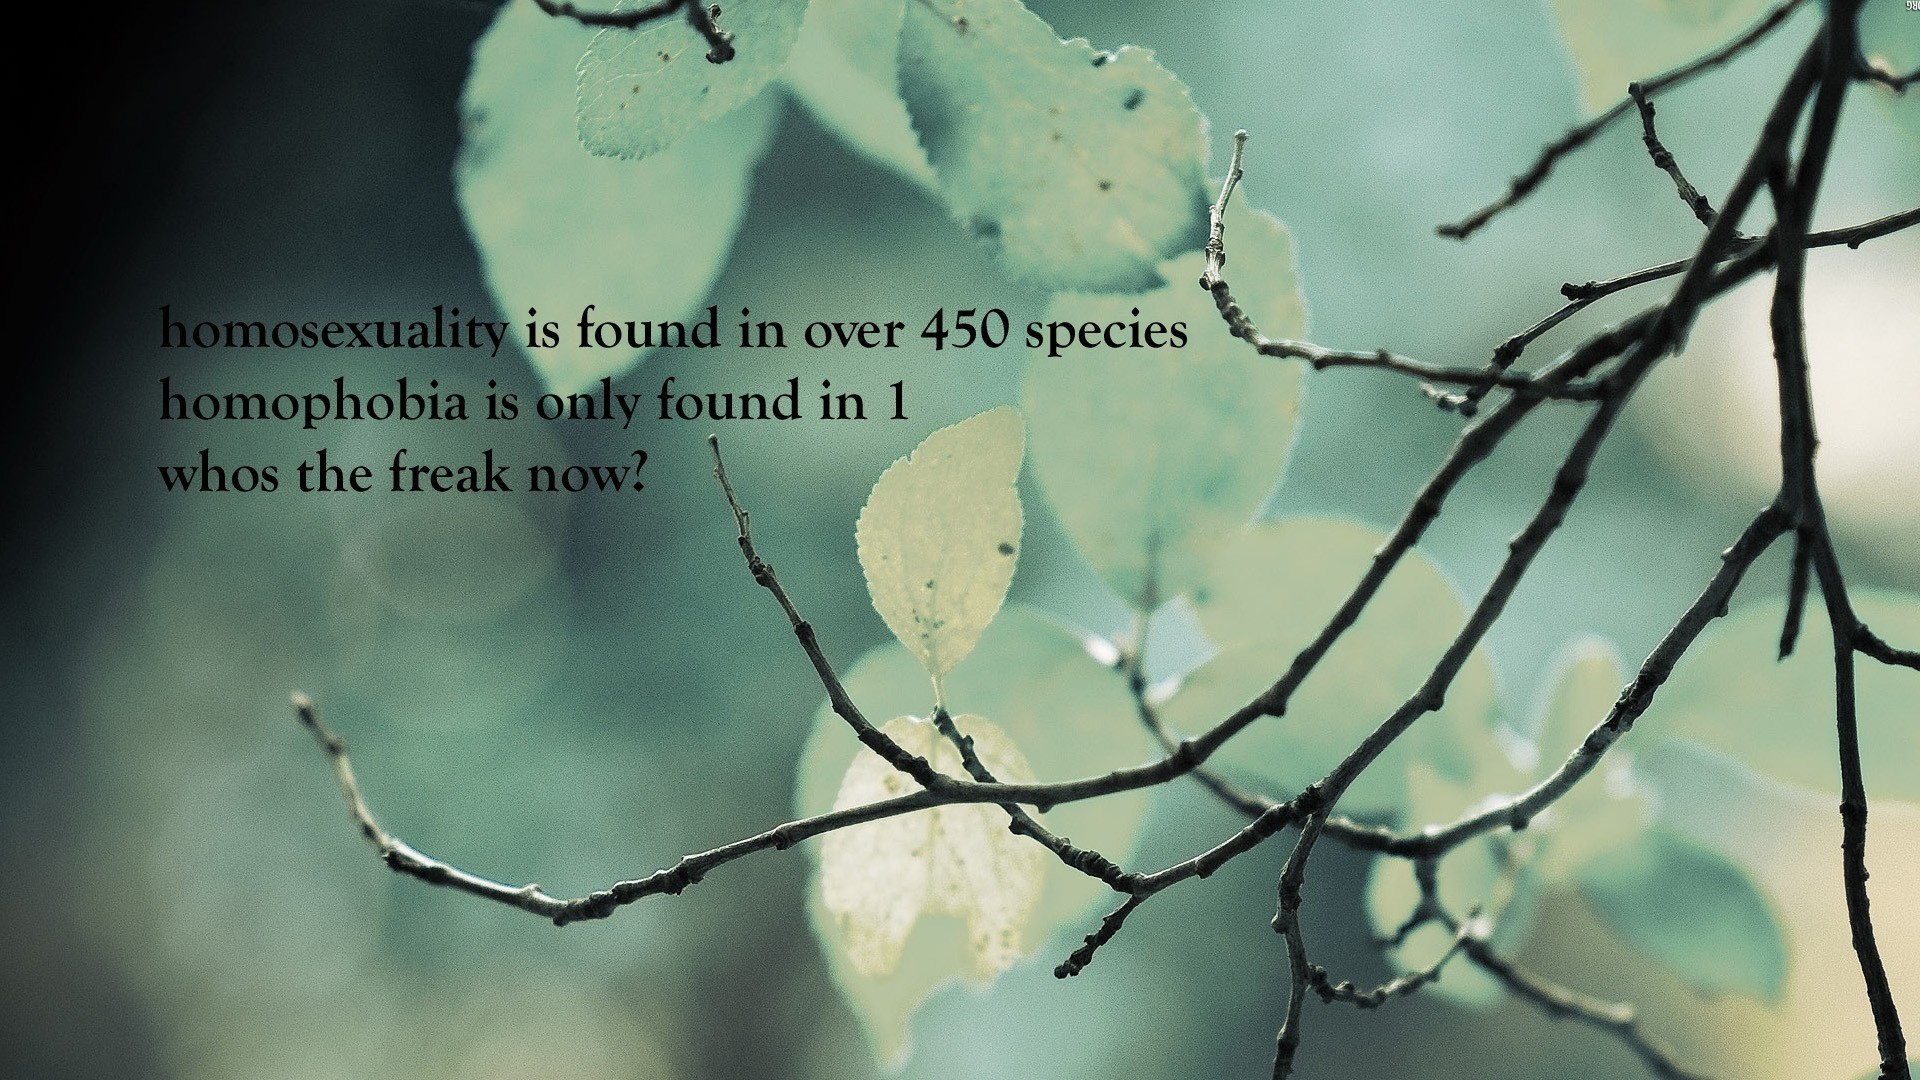 Funny-minimalistic-nature-quotes-text-1920x1080-minimalistic-nature-quotes-text-via-www-allwa-wallpaper-wp3406061